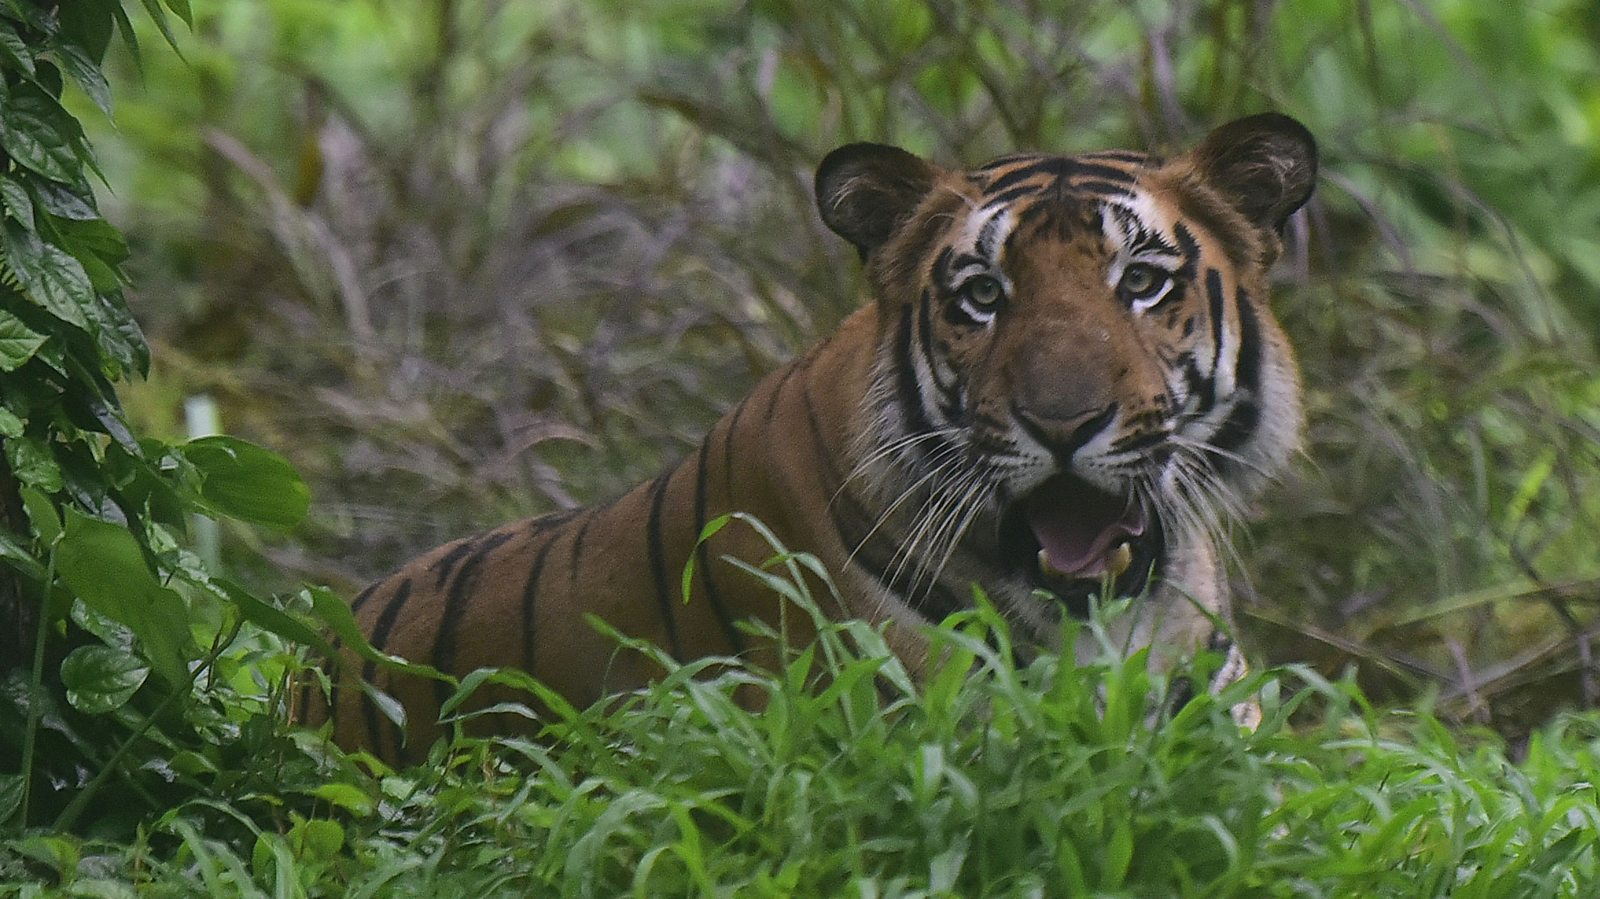 Saving India's tigers from extinction